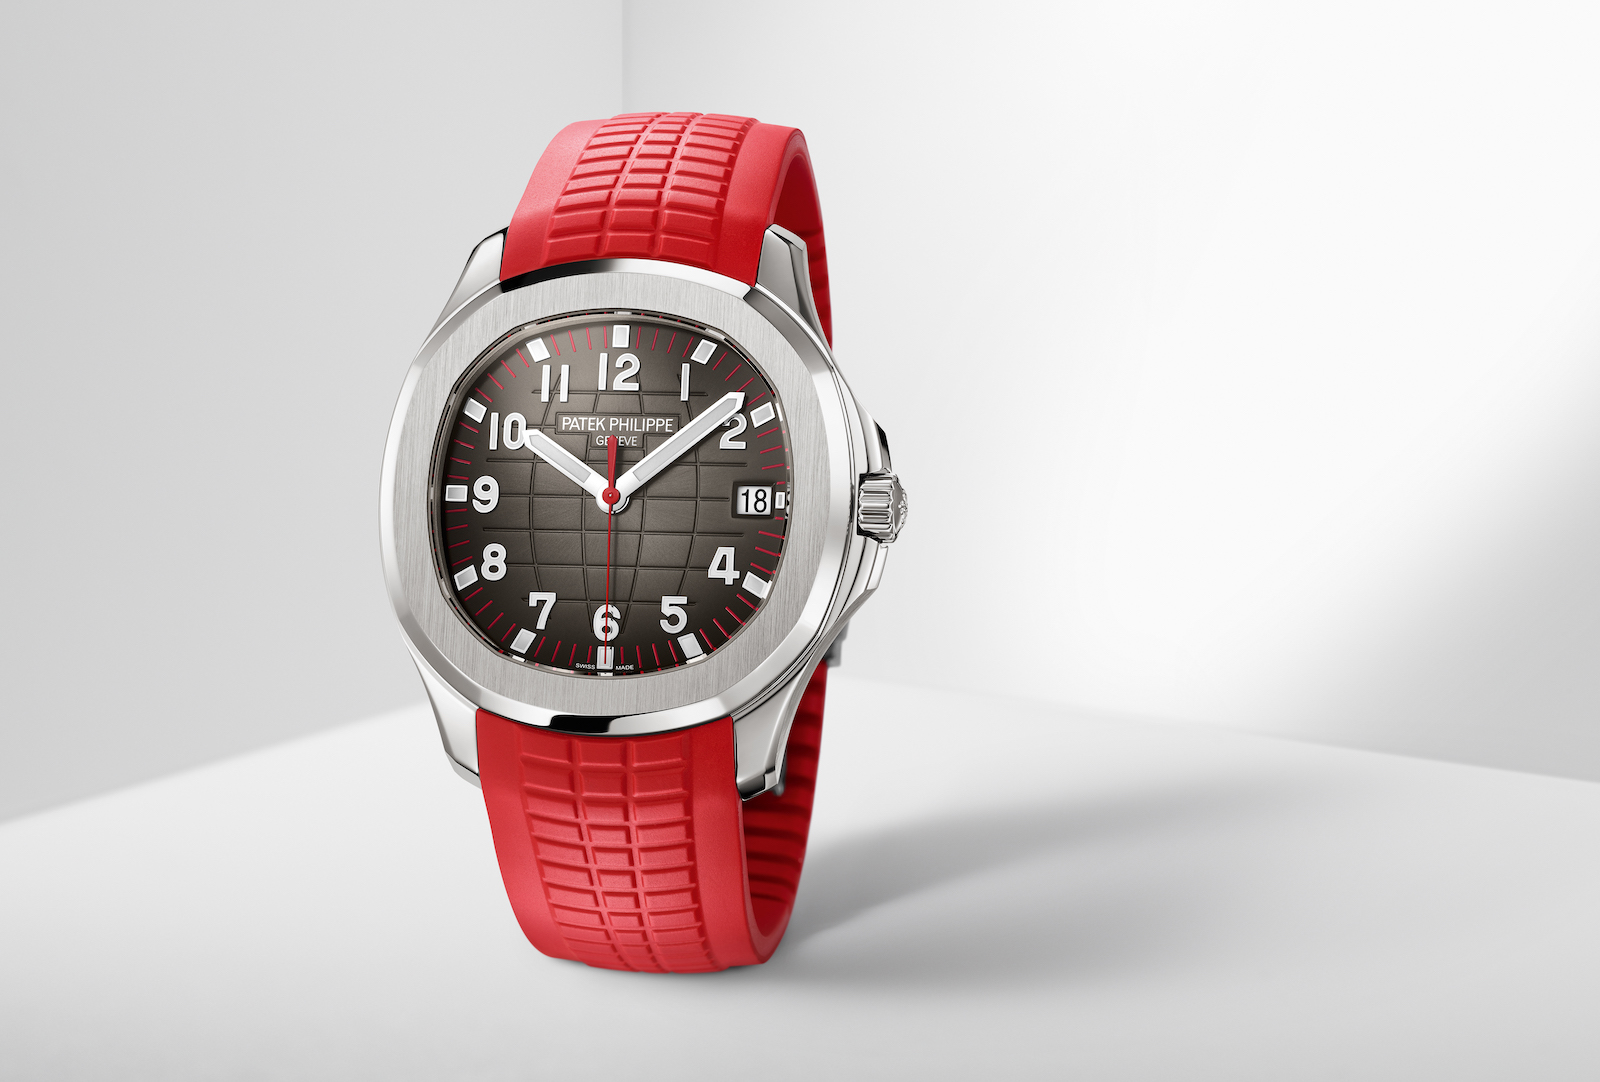 Patek Philippe Singapore 2019 Special Editions - 5167A-012